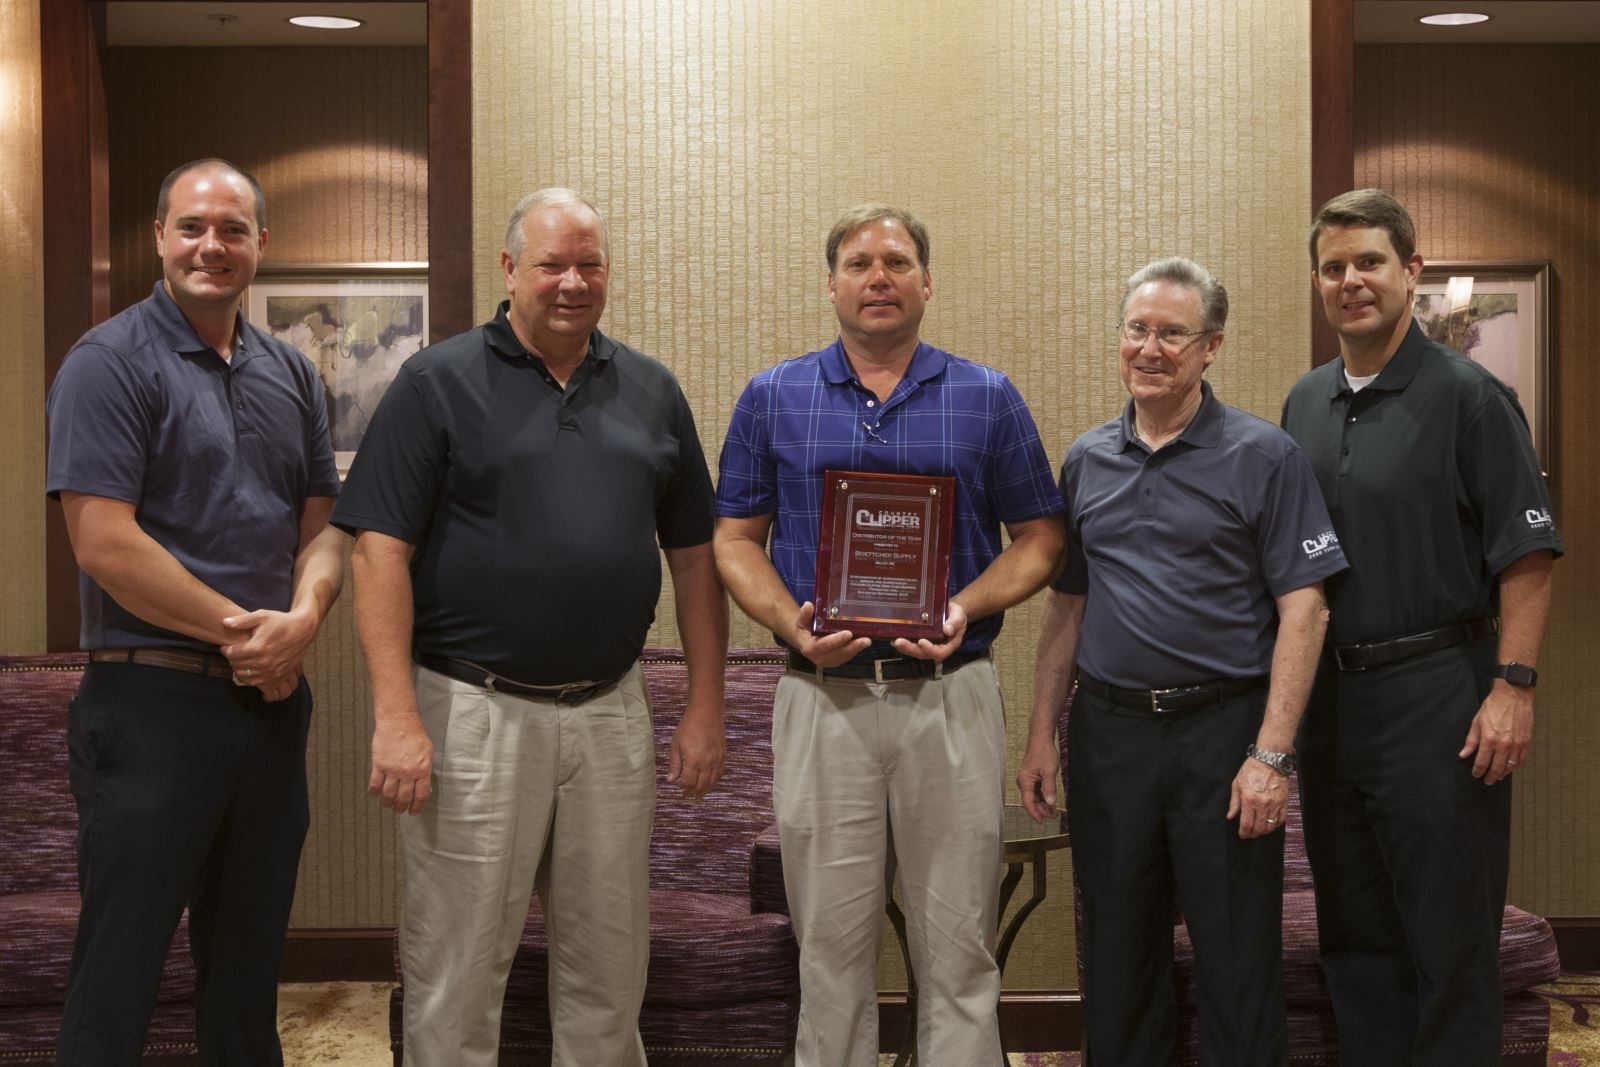 COUNTRY CLIPPER PRESENTS DISTRIBUTOR OF THE YEAR AWARD TO BOETTCHER SUPPLY